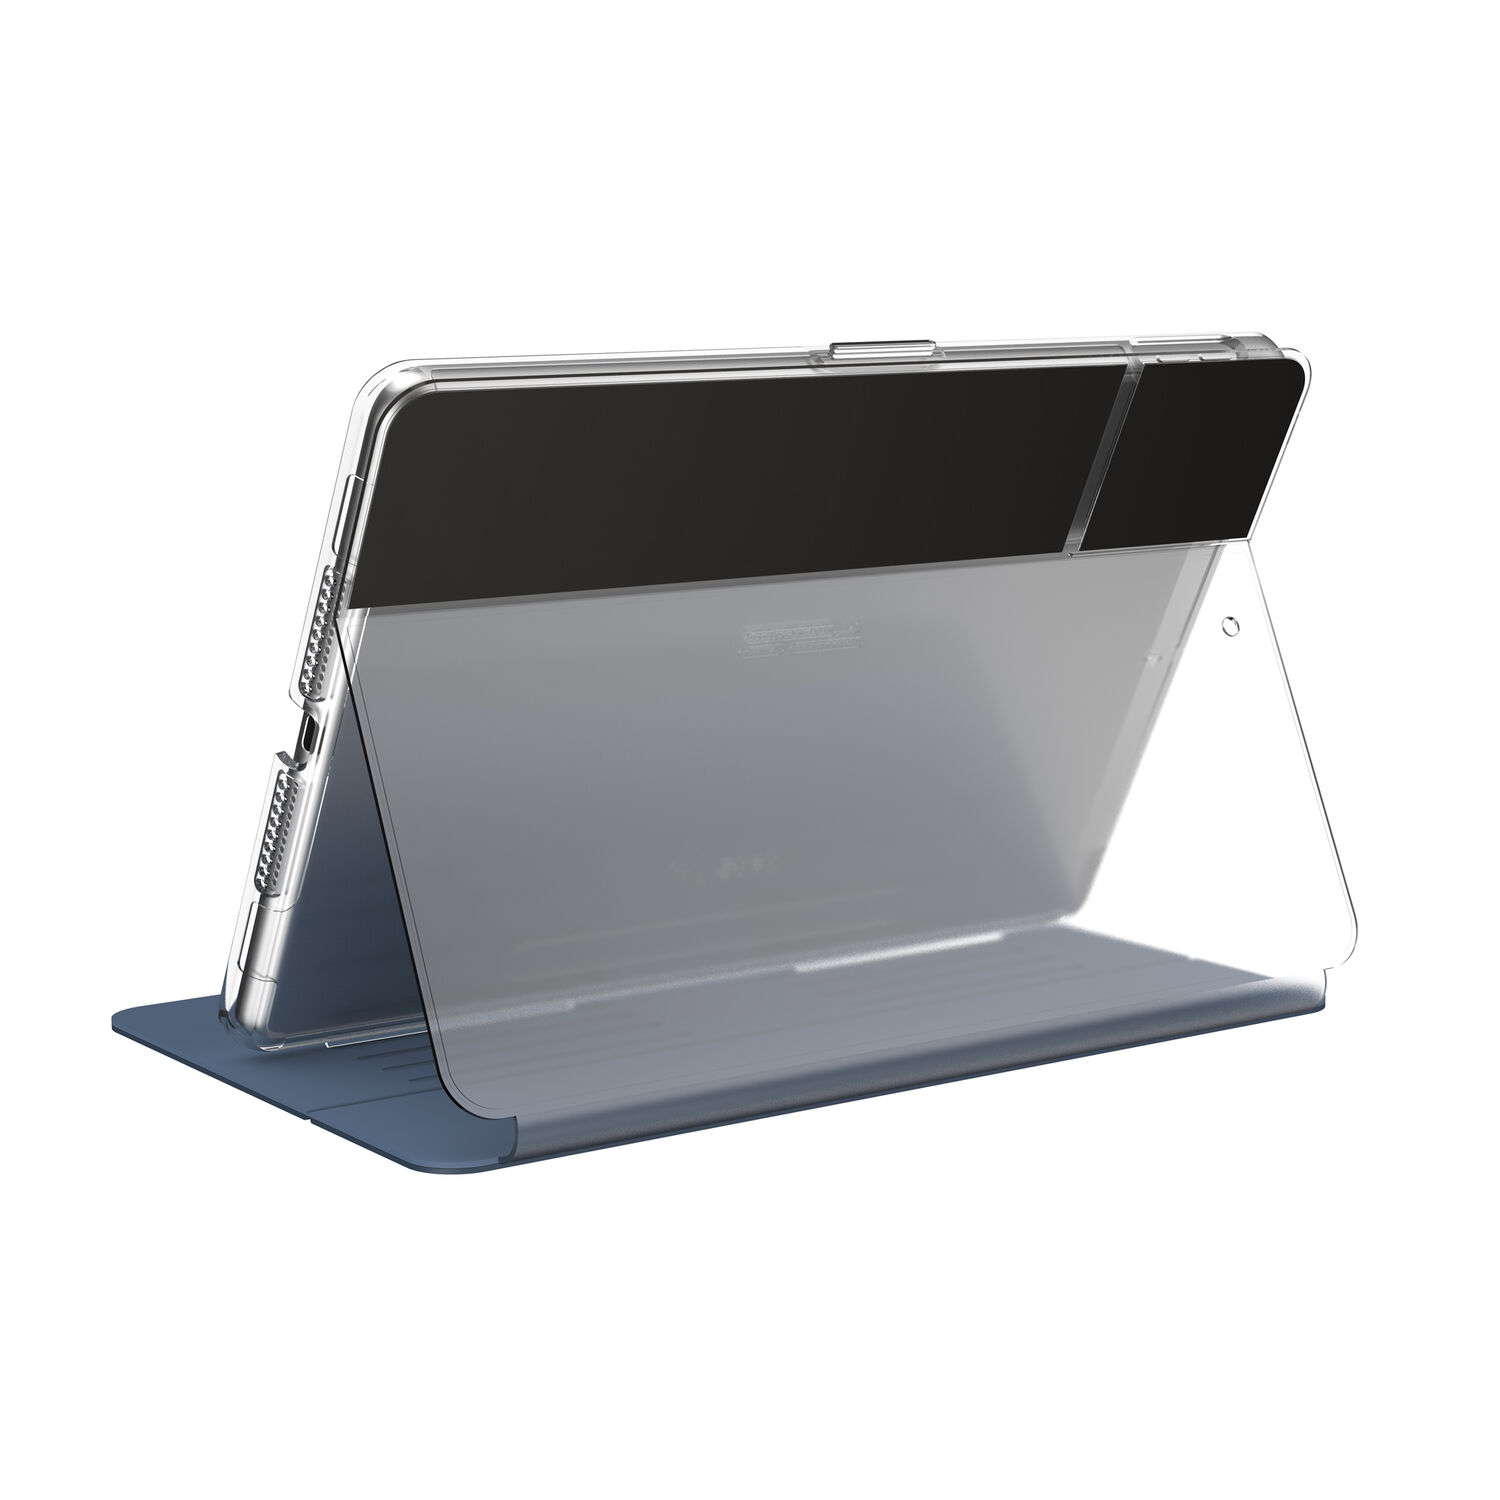 Speck Balance Carrying Case (Folio Clear) for 10.2in iPad 7th Generation (2019) - Blue/Clear at Small Dog Electronics